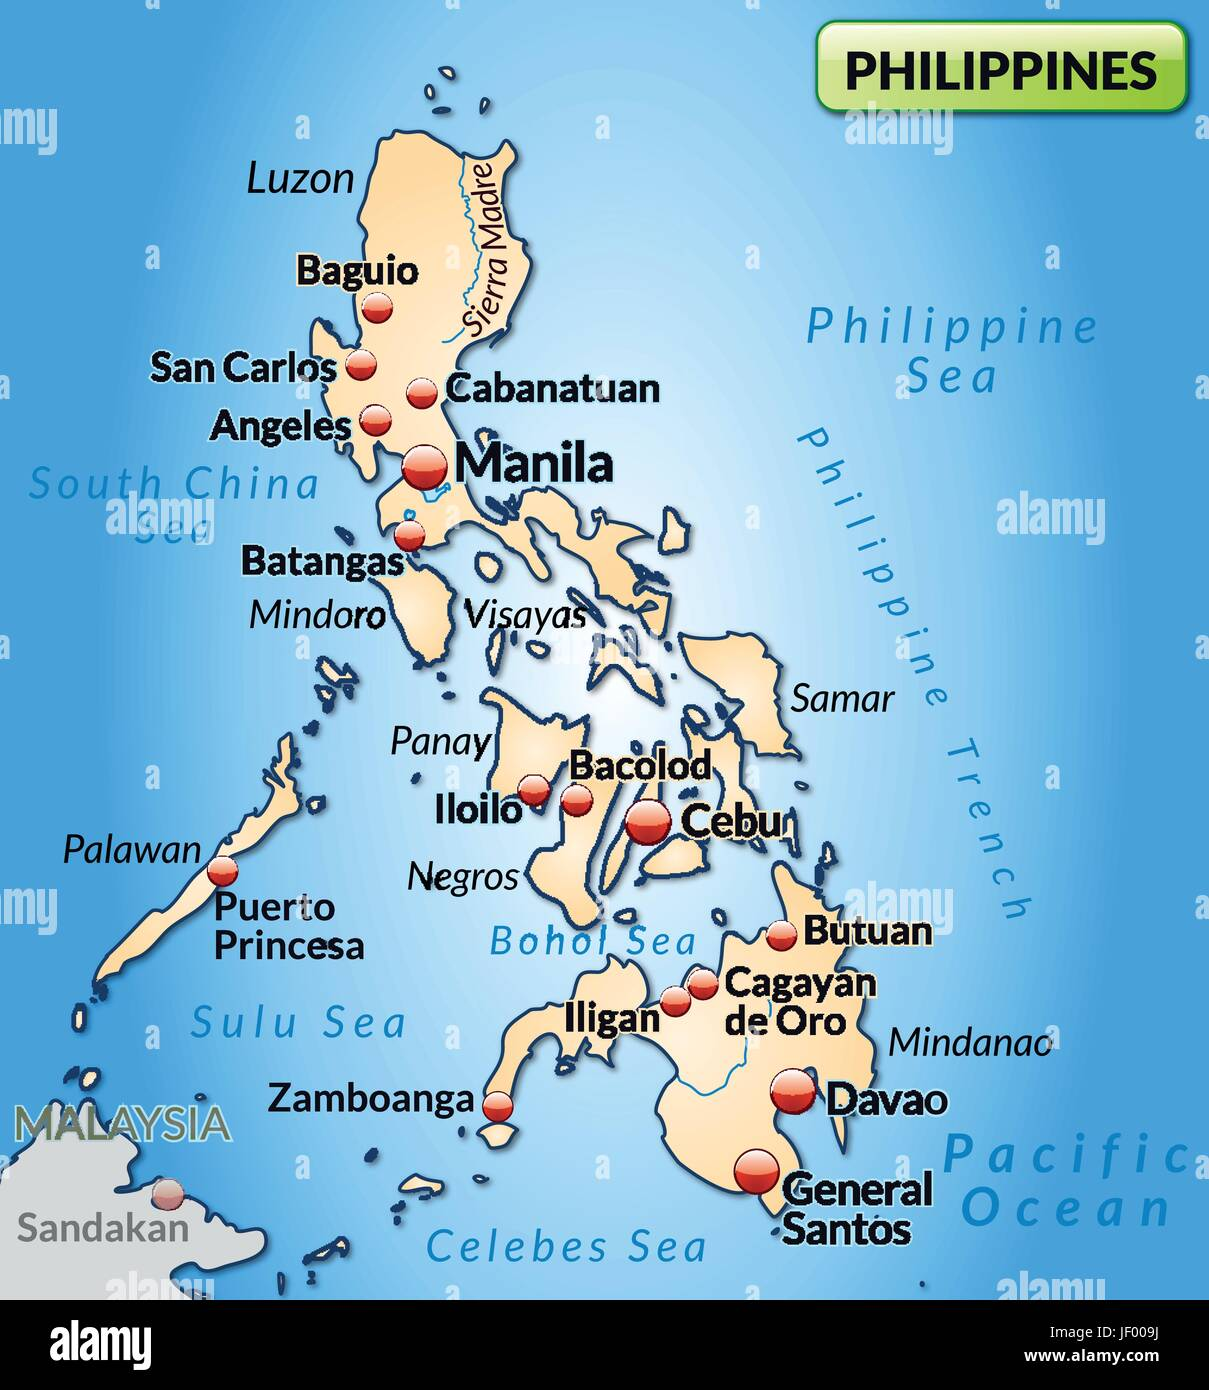 map of the philippines as an overview map in pastelorange Stock